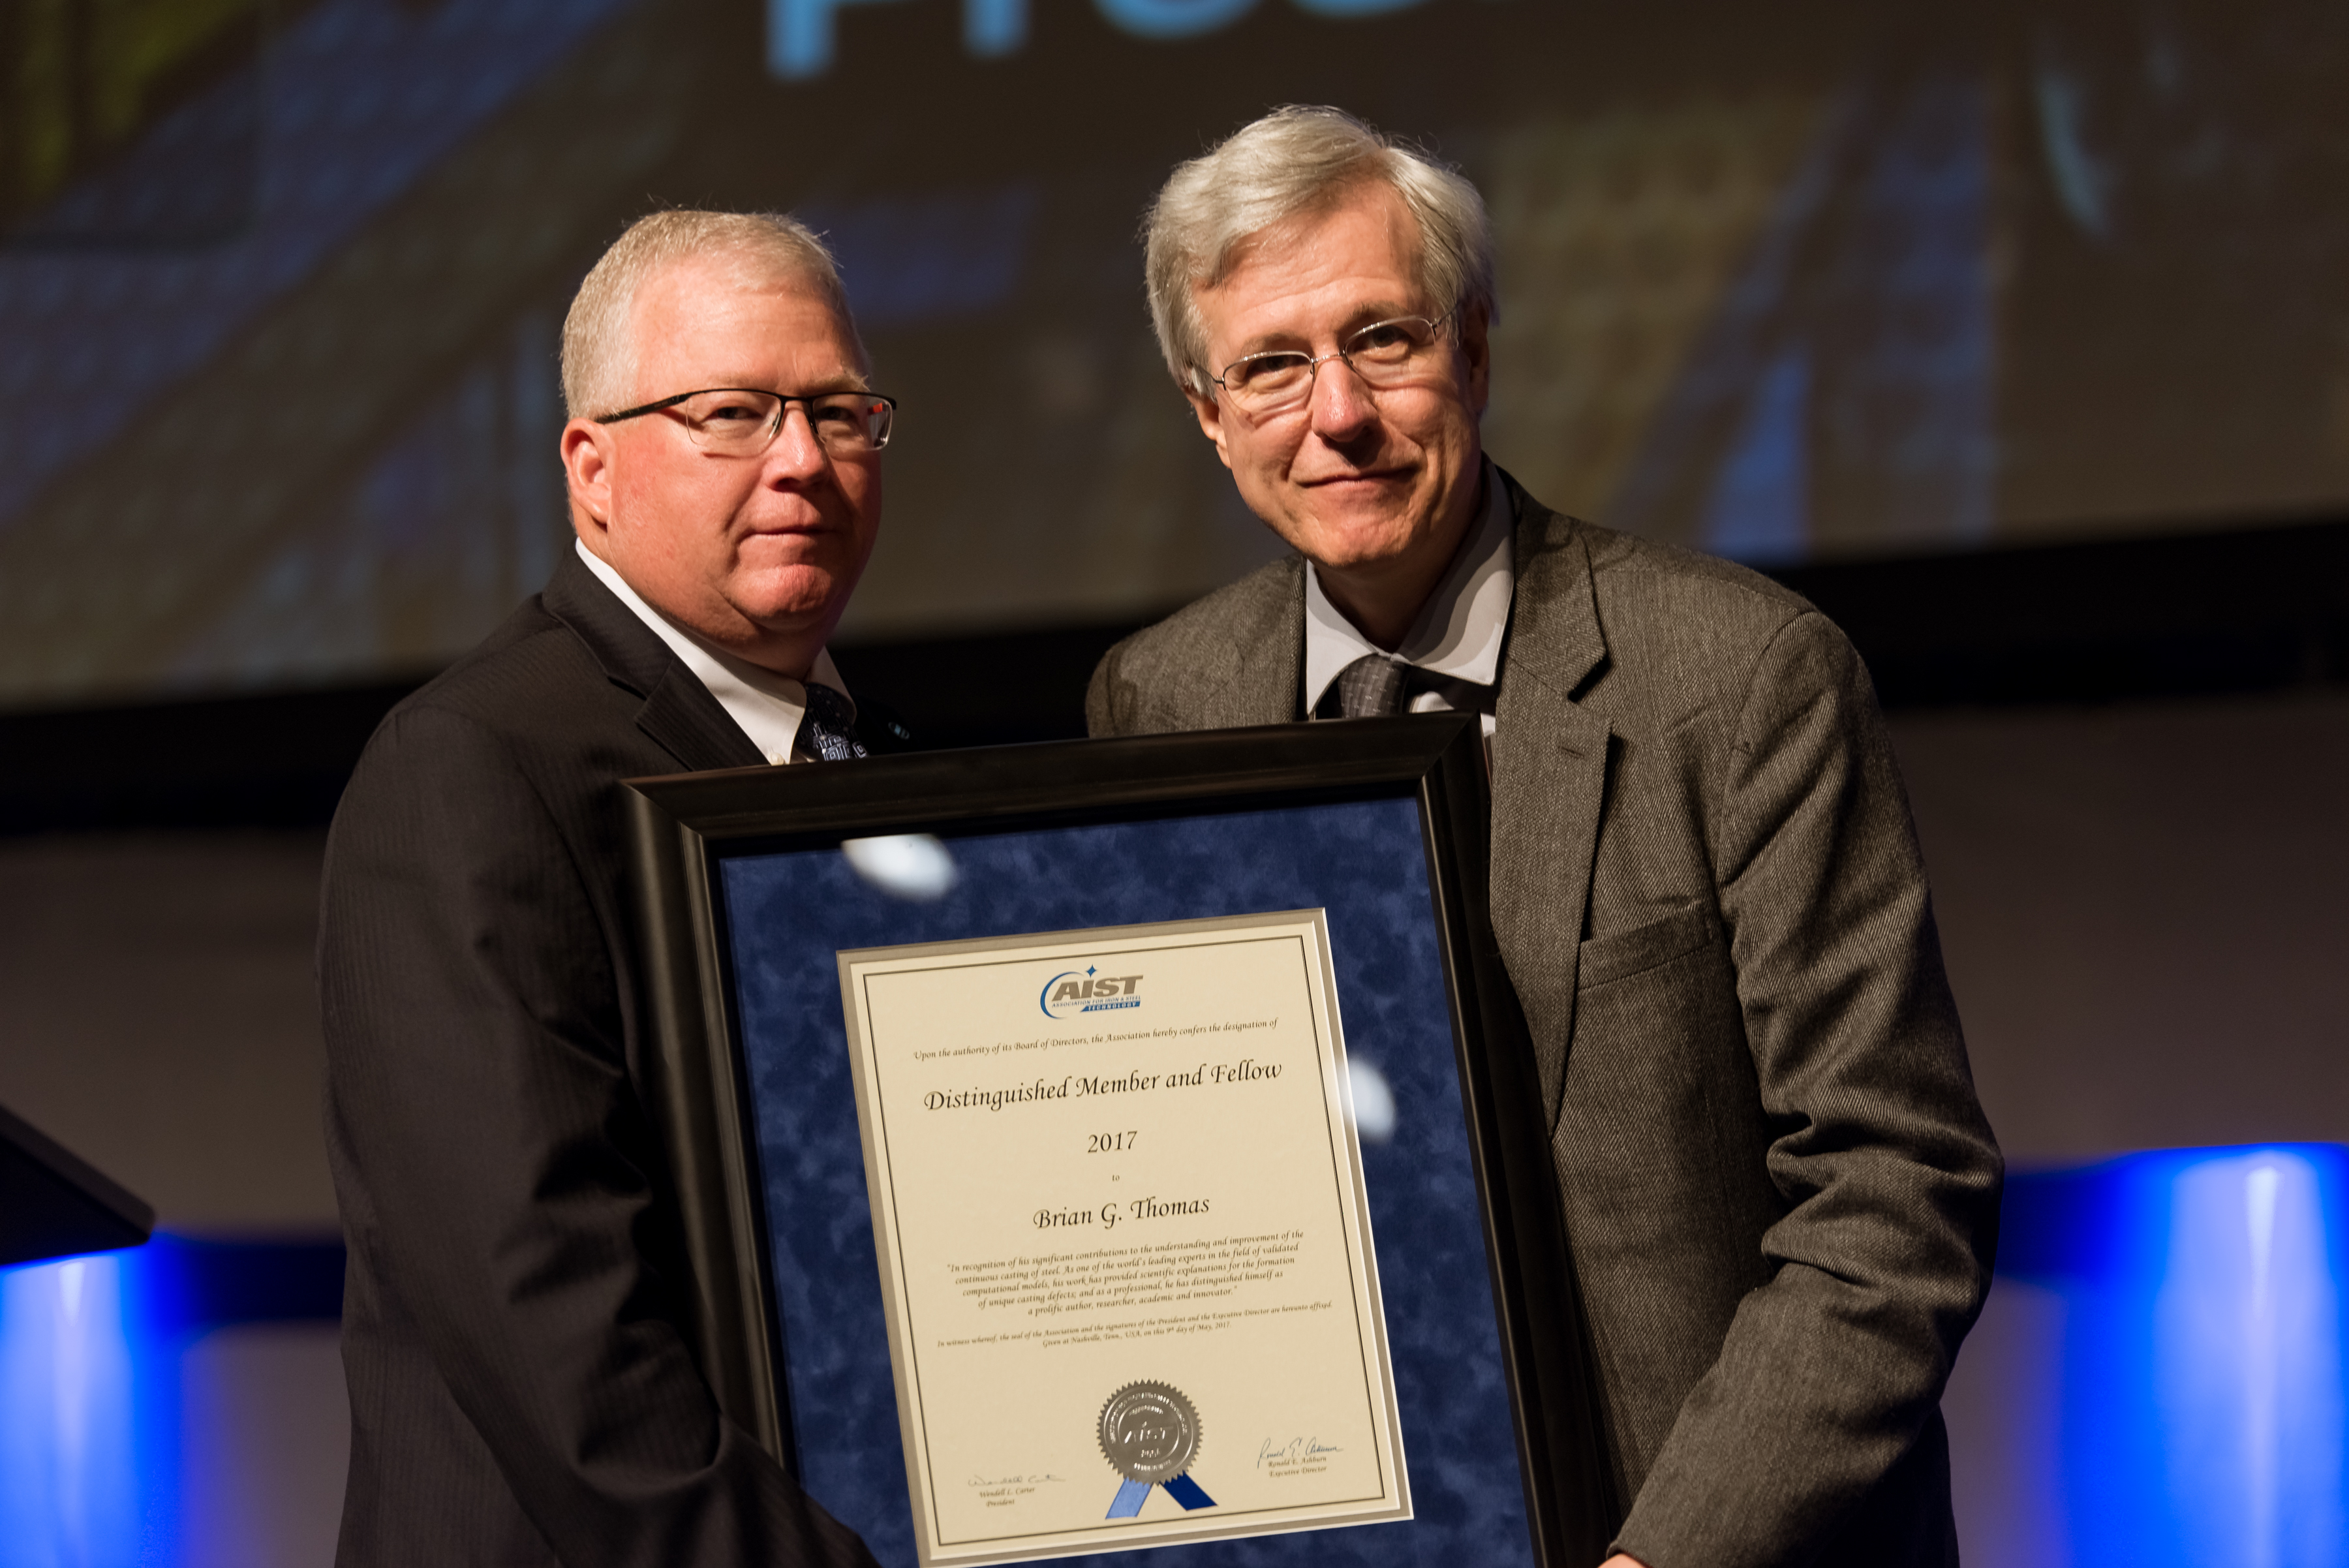 AIST Past President Wendell Carter, left, presents the Distinguished Member and Fellow Award to Brian Thomas.